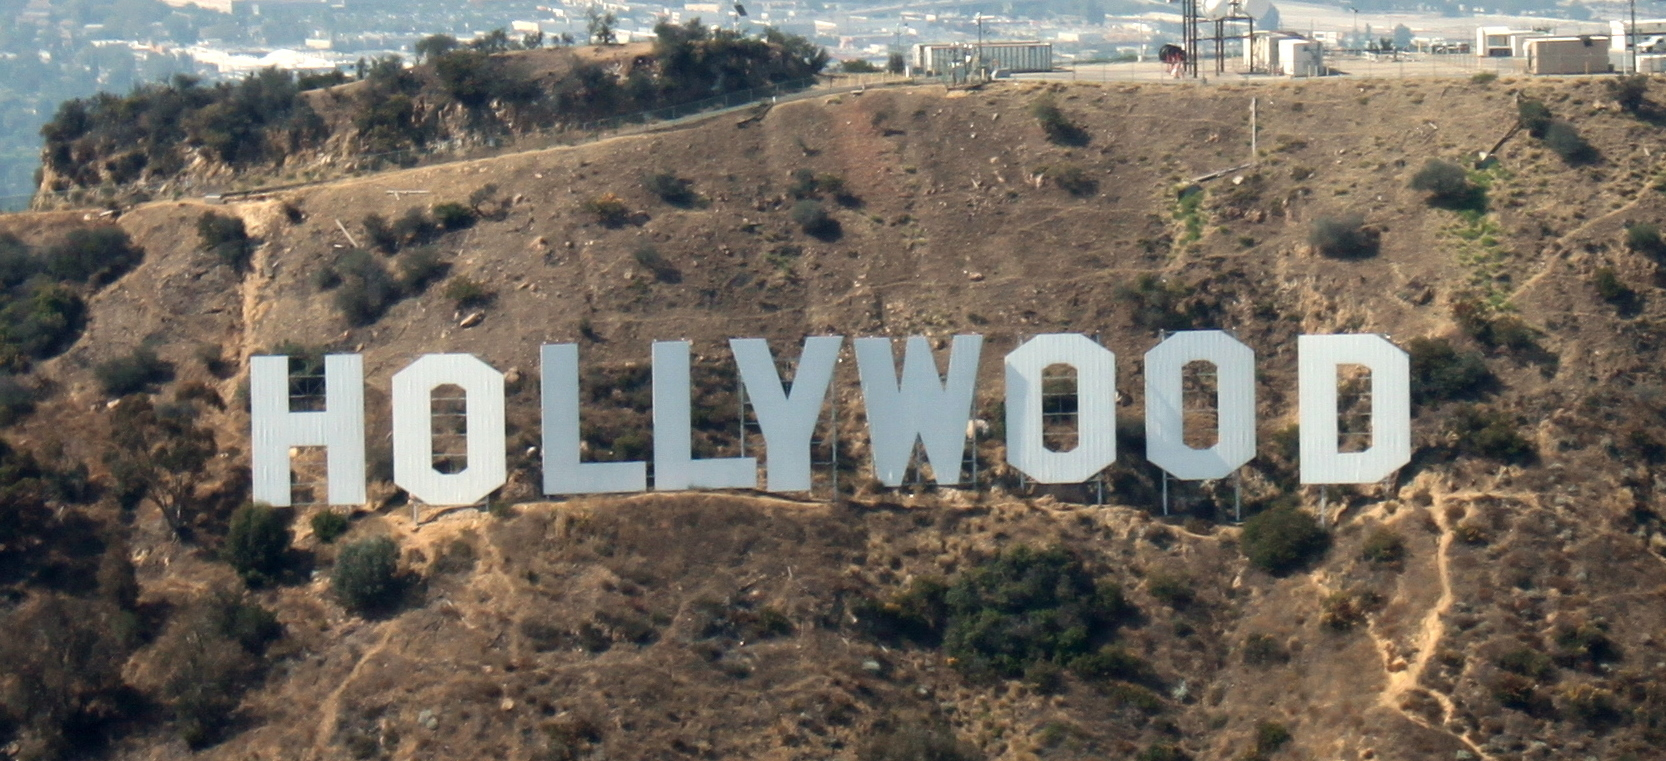 https://upload.wikimedia.org/wikipedia/commons/3/31/Aerial_Hollywood_Sign.jpg